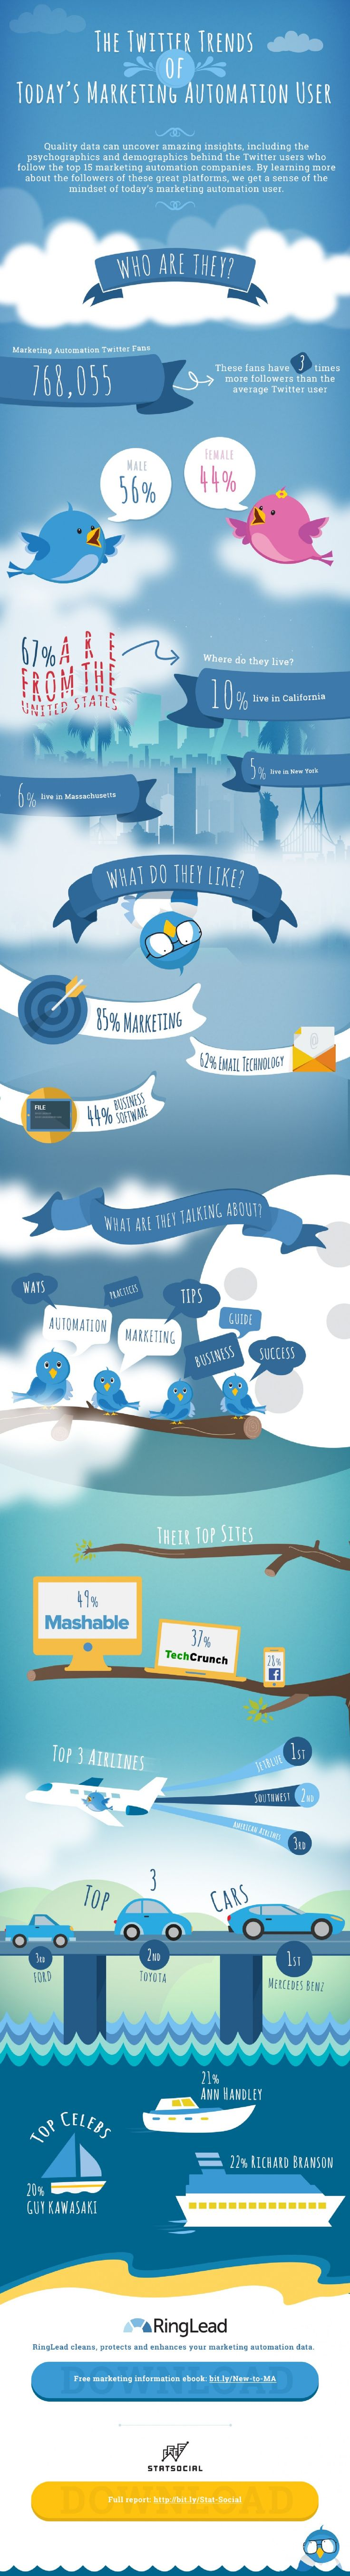 The Twitter Trends of Today's Marketing Automation User #infographic